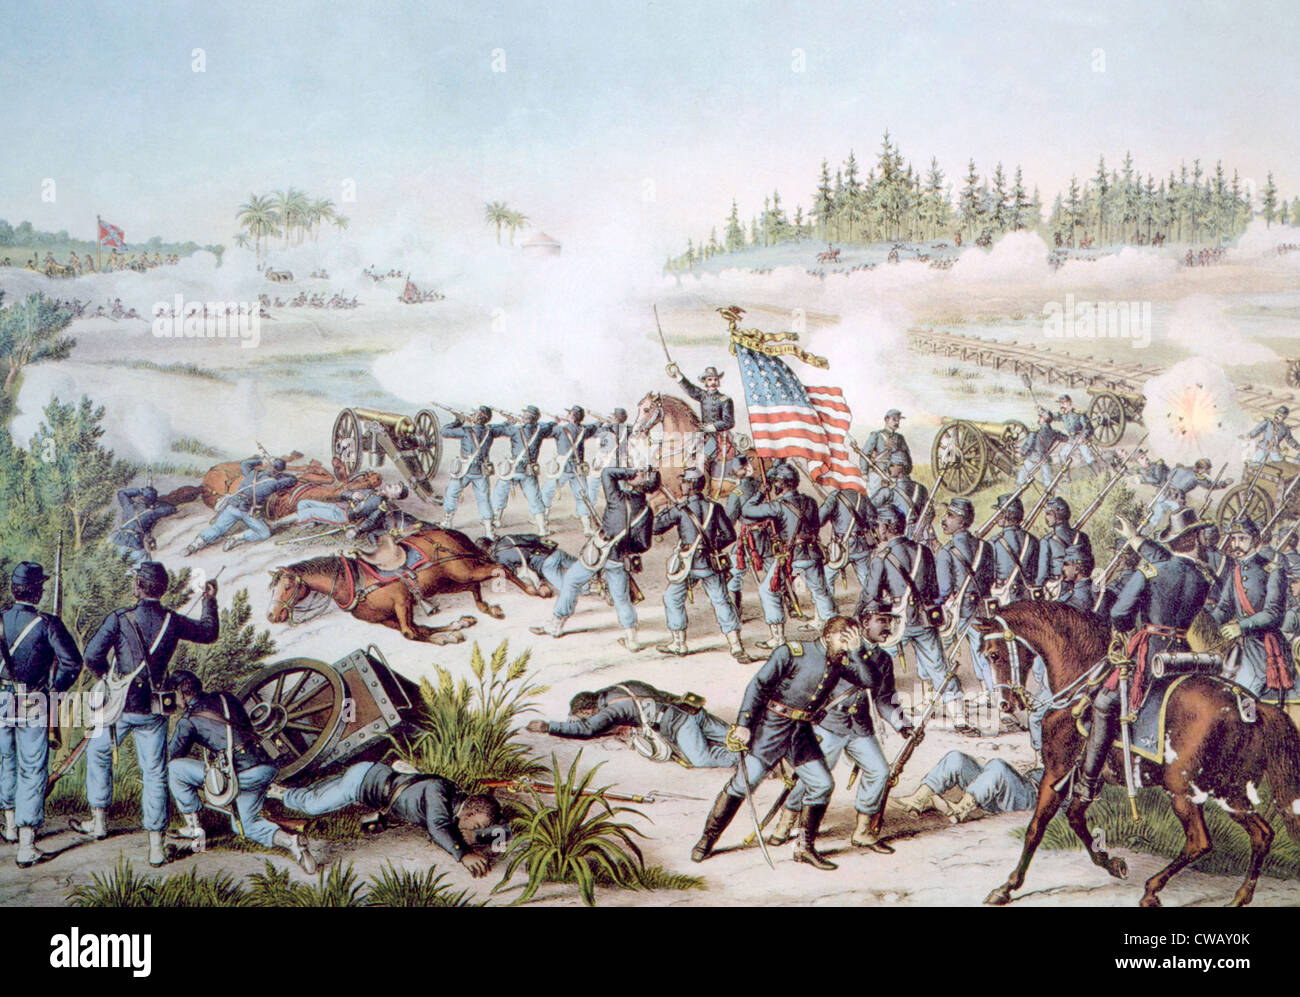 The Battle of Olustee, February 20, 1864 - Stock Image